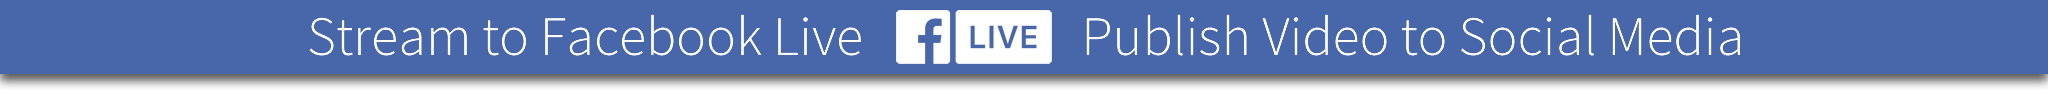 How to stream to Facebook Live and publish video to social media